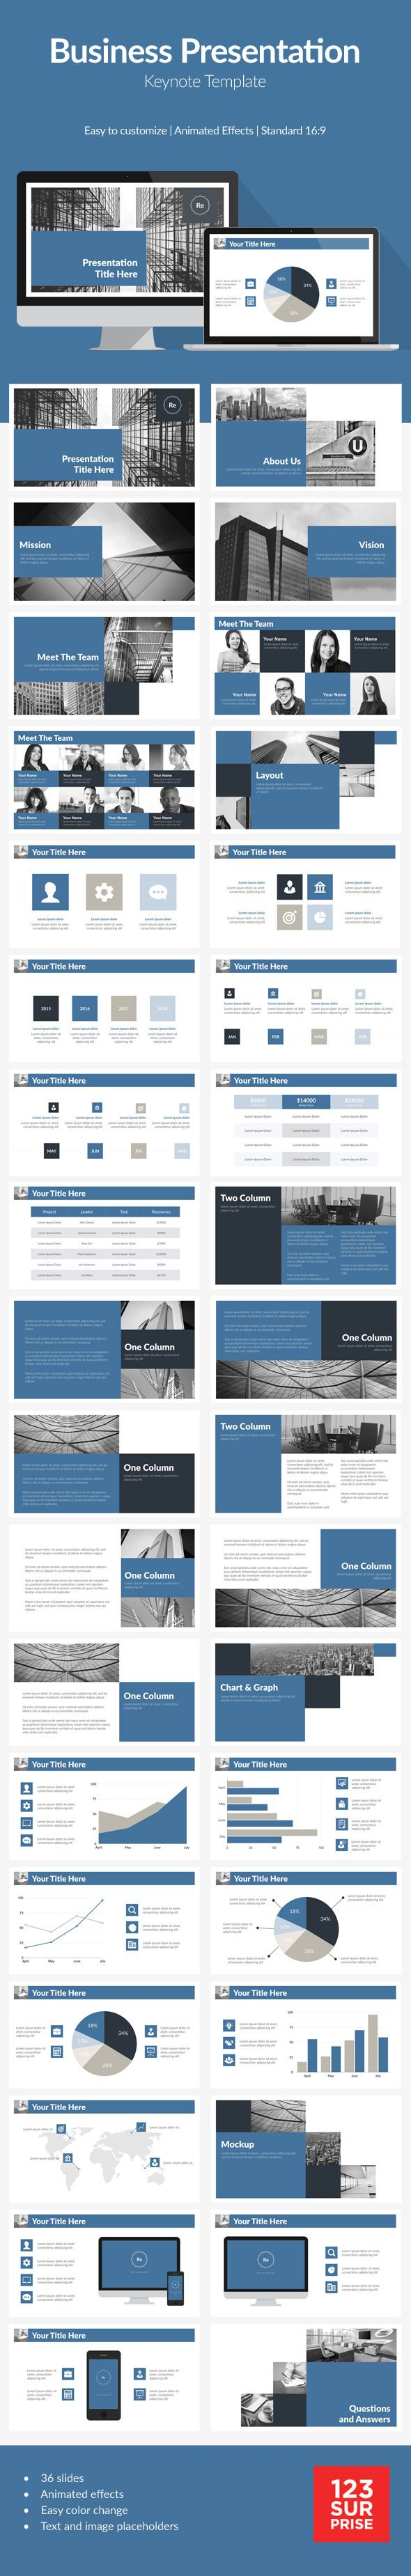 Blue Corporate Business Presentation Template #design #slides Buy Now: http://graphicriver.net/item/blue-corporate-business-presentation-template/12907943?ref=ksioks